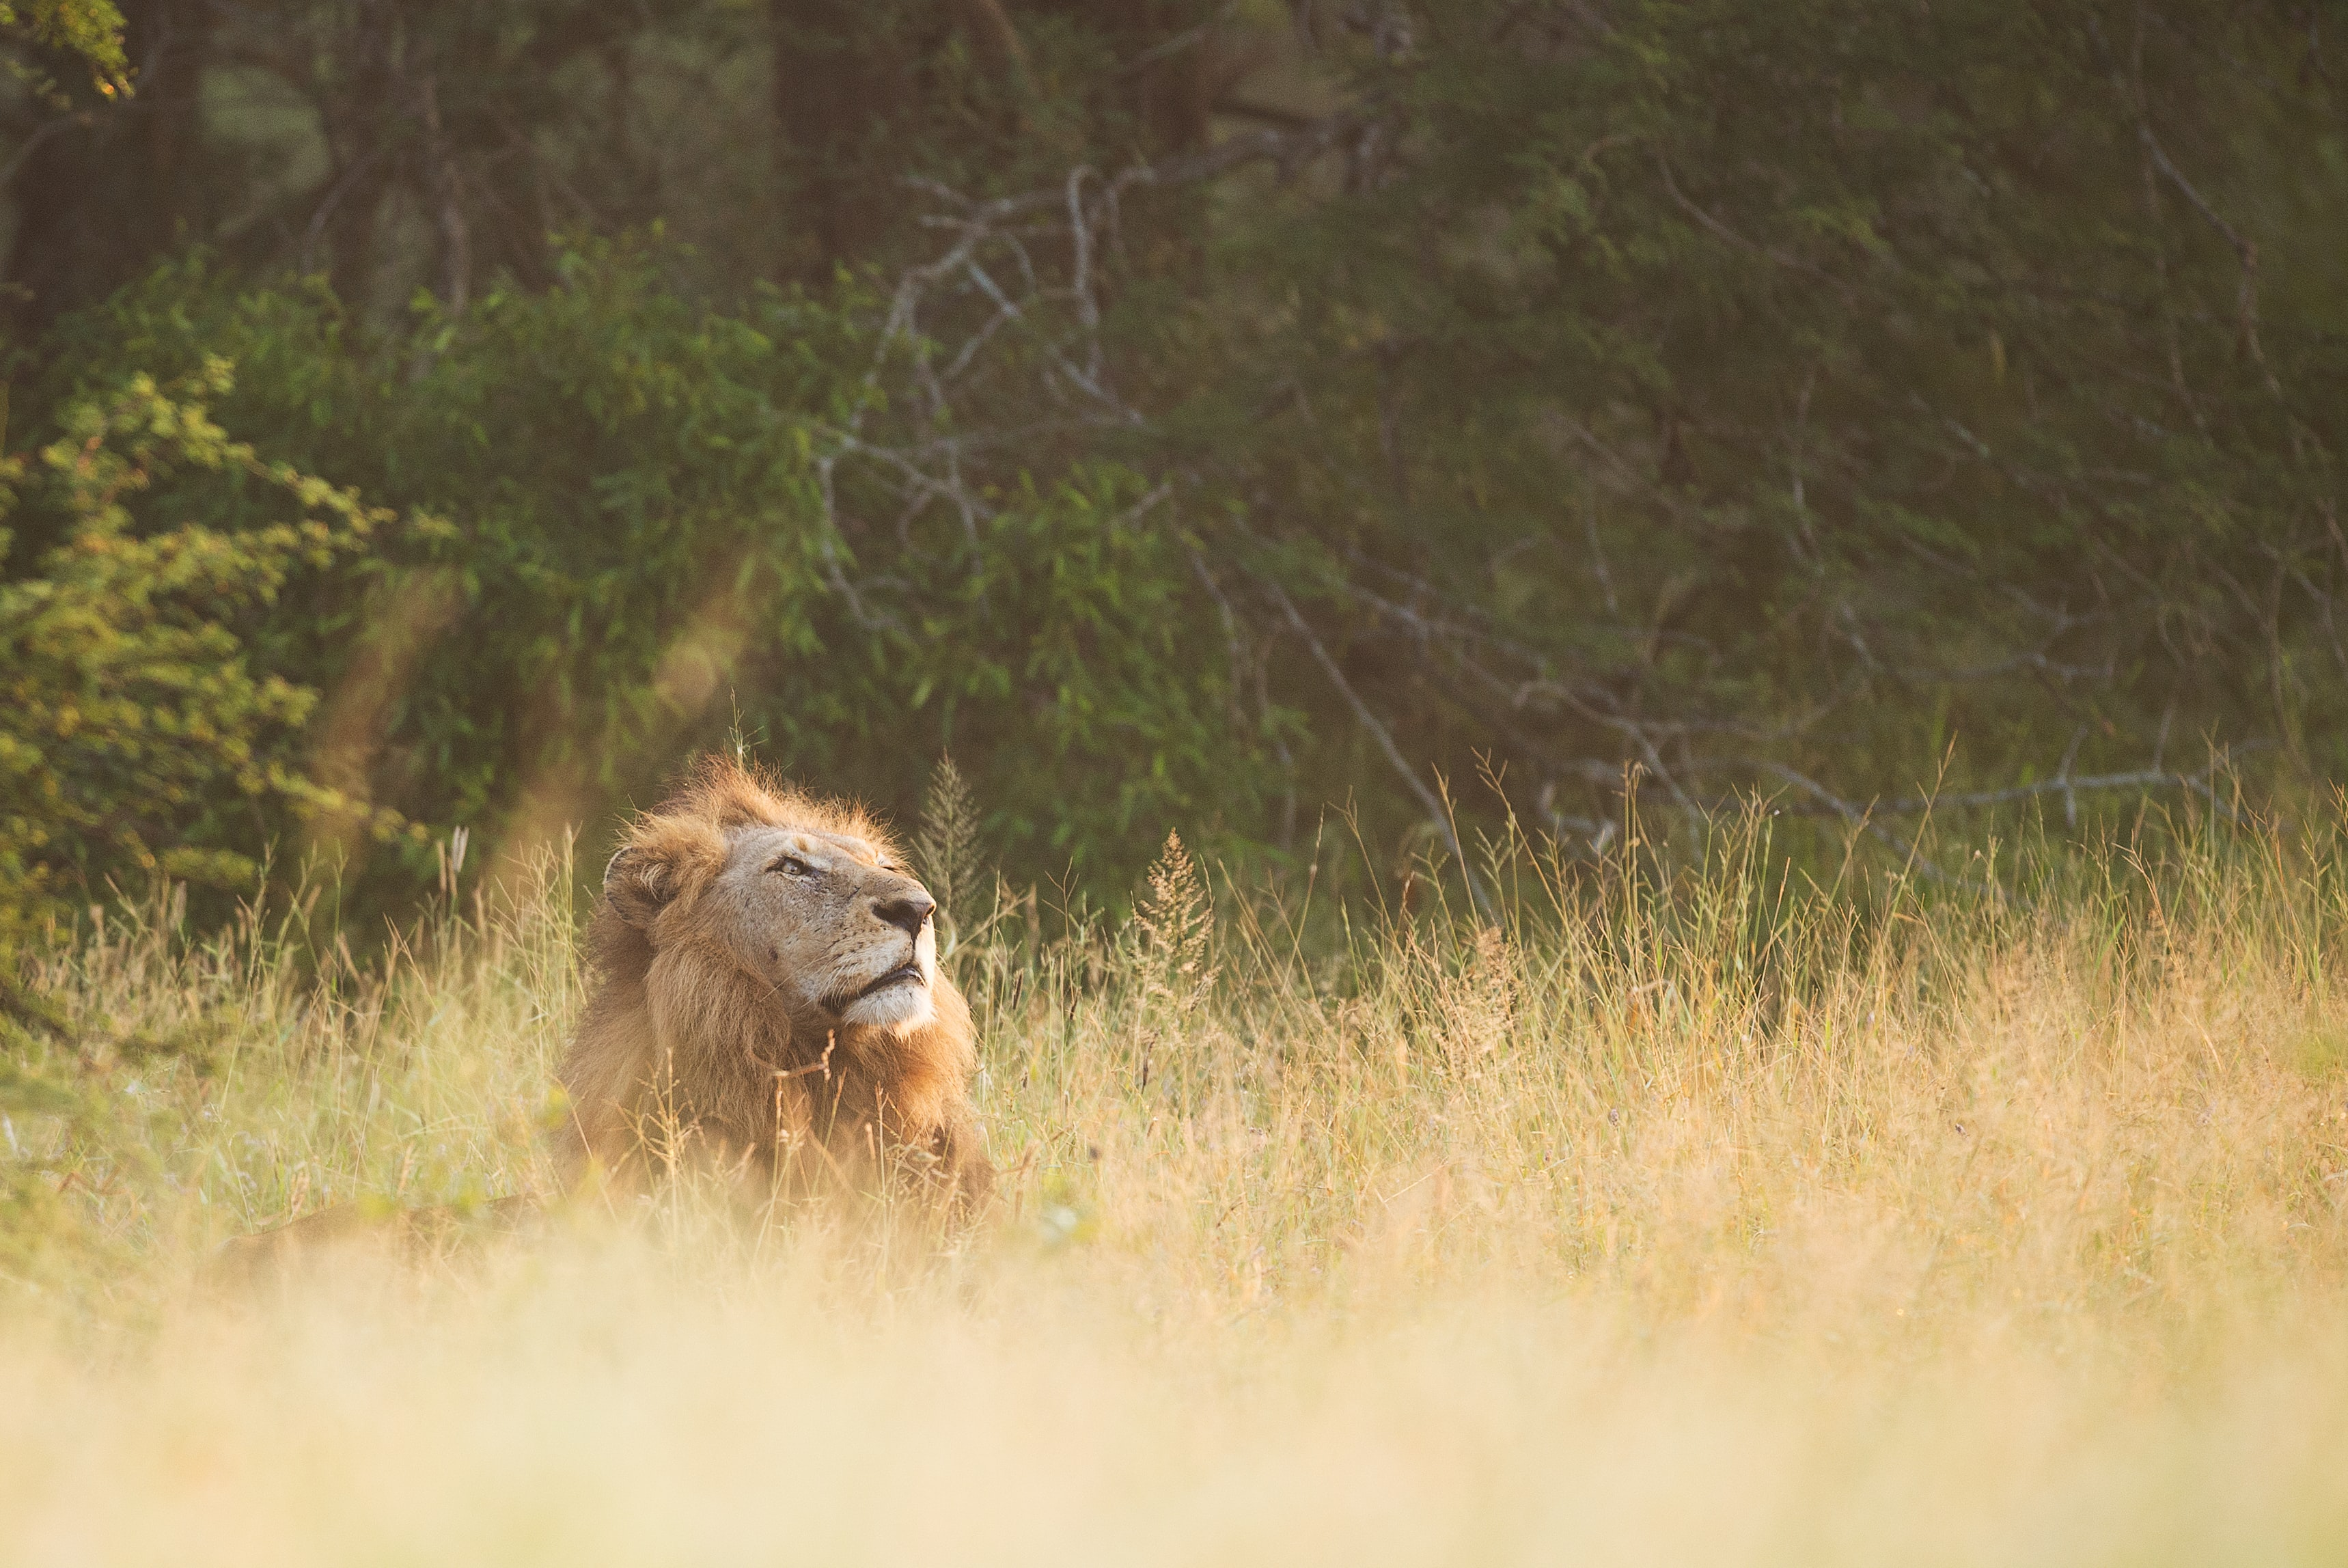 brown lion lying on grasses during daytime